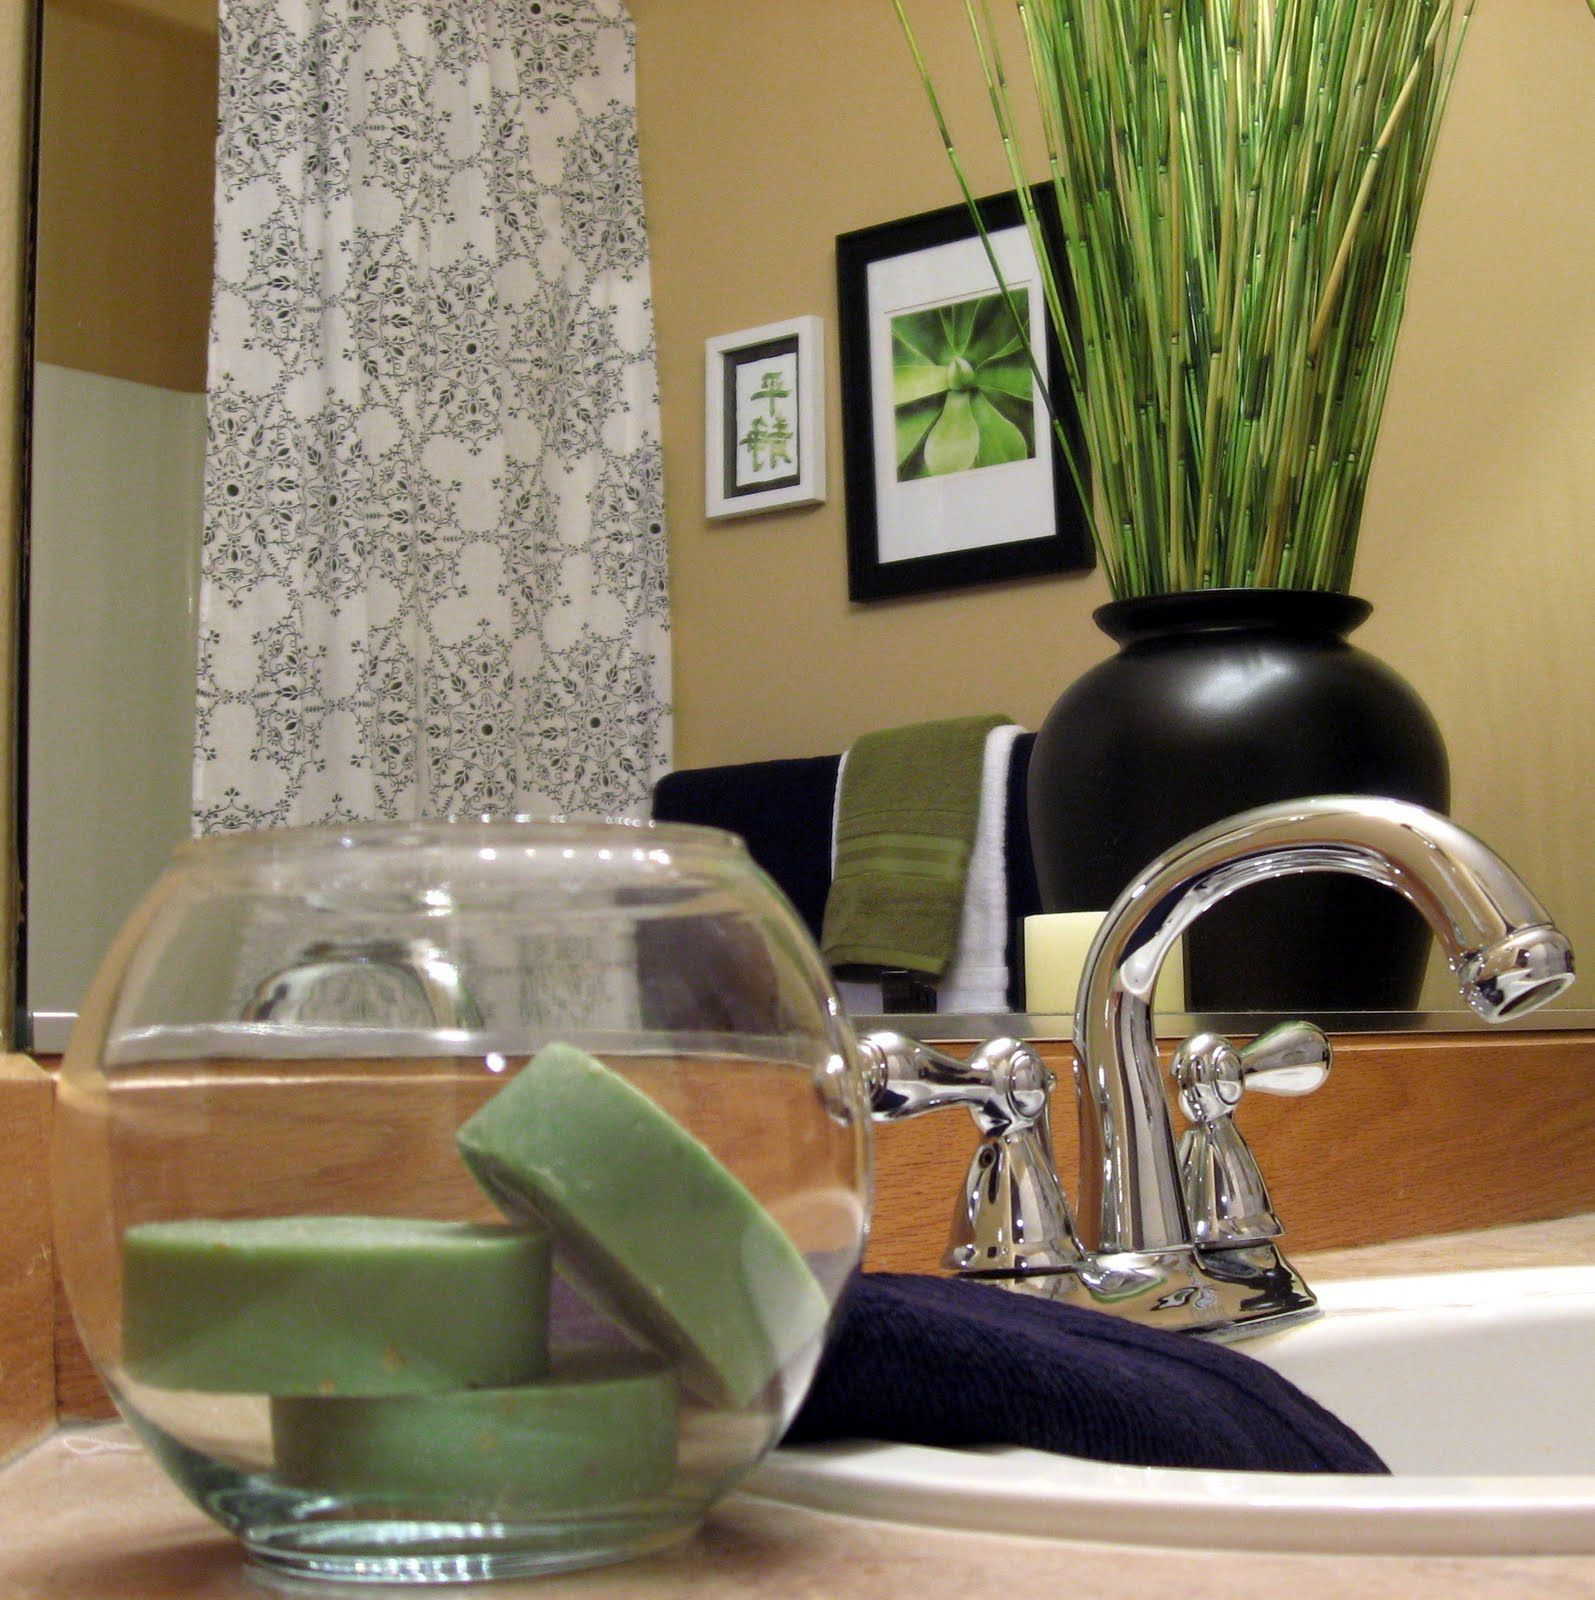 Spa Bathroom Design Ideas Spa Bathroom Accessories Design Home Spa